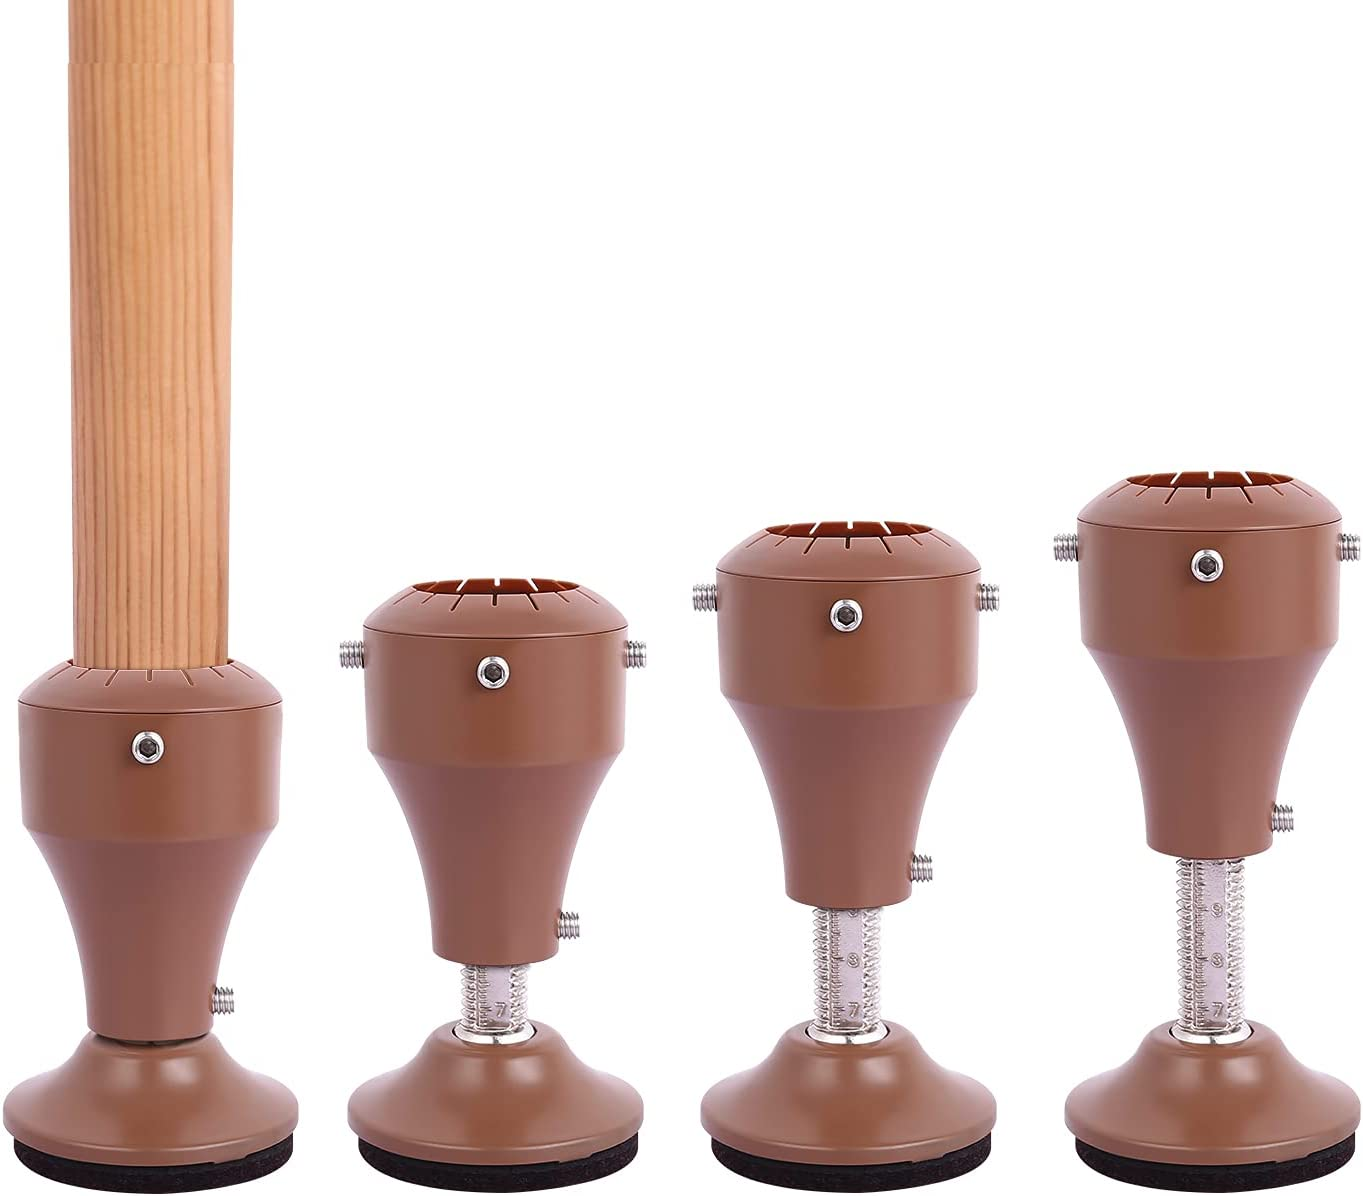 4 Pack Adjustable Chair Risers, Risers for Chair Legs, Height from 7cm to 10cm, 360° Rotatable Furniture Riser Base, Heavy Duty Design Fit Chair Table Desk Sofa Feet Diameter from 3cm to 4cm, Brown